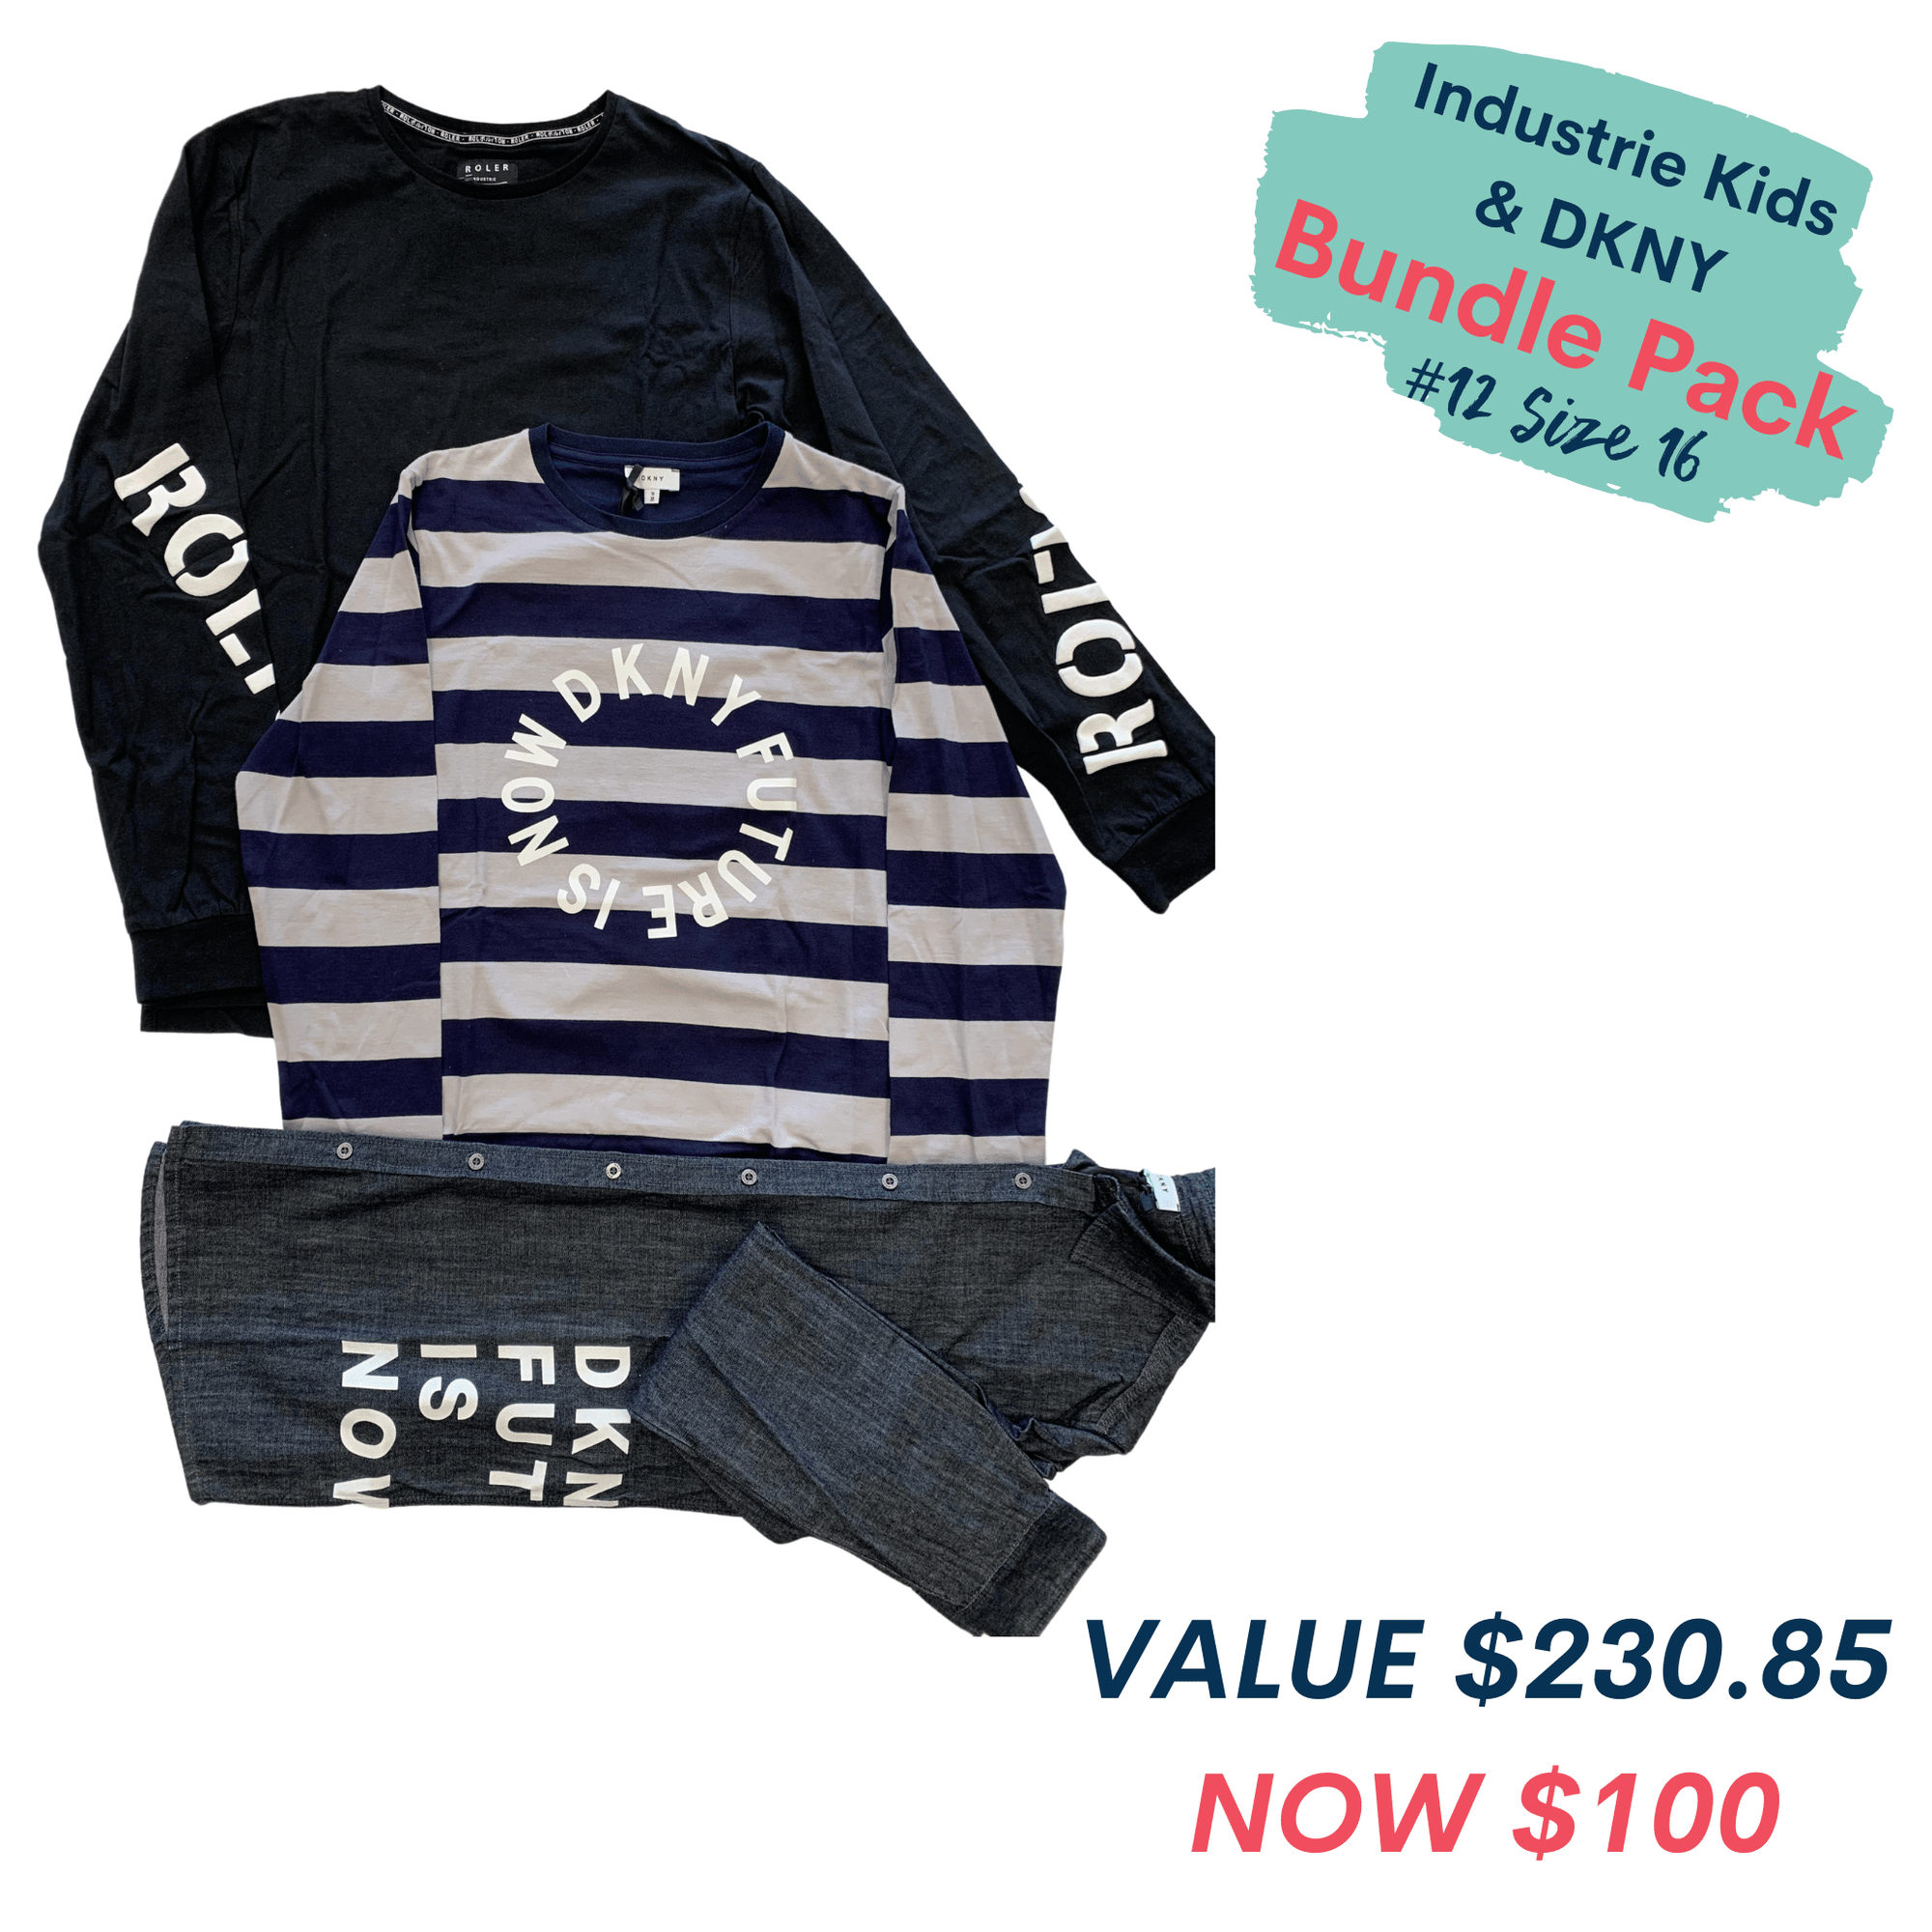 Bundle Pack # 12 Size 16 - DKNY & Industrie Kids